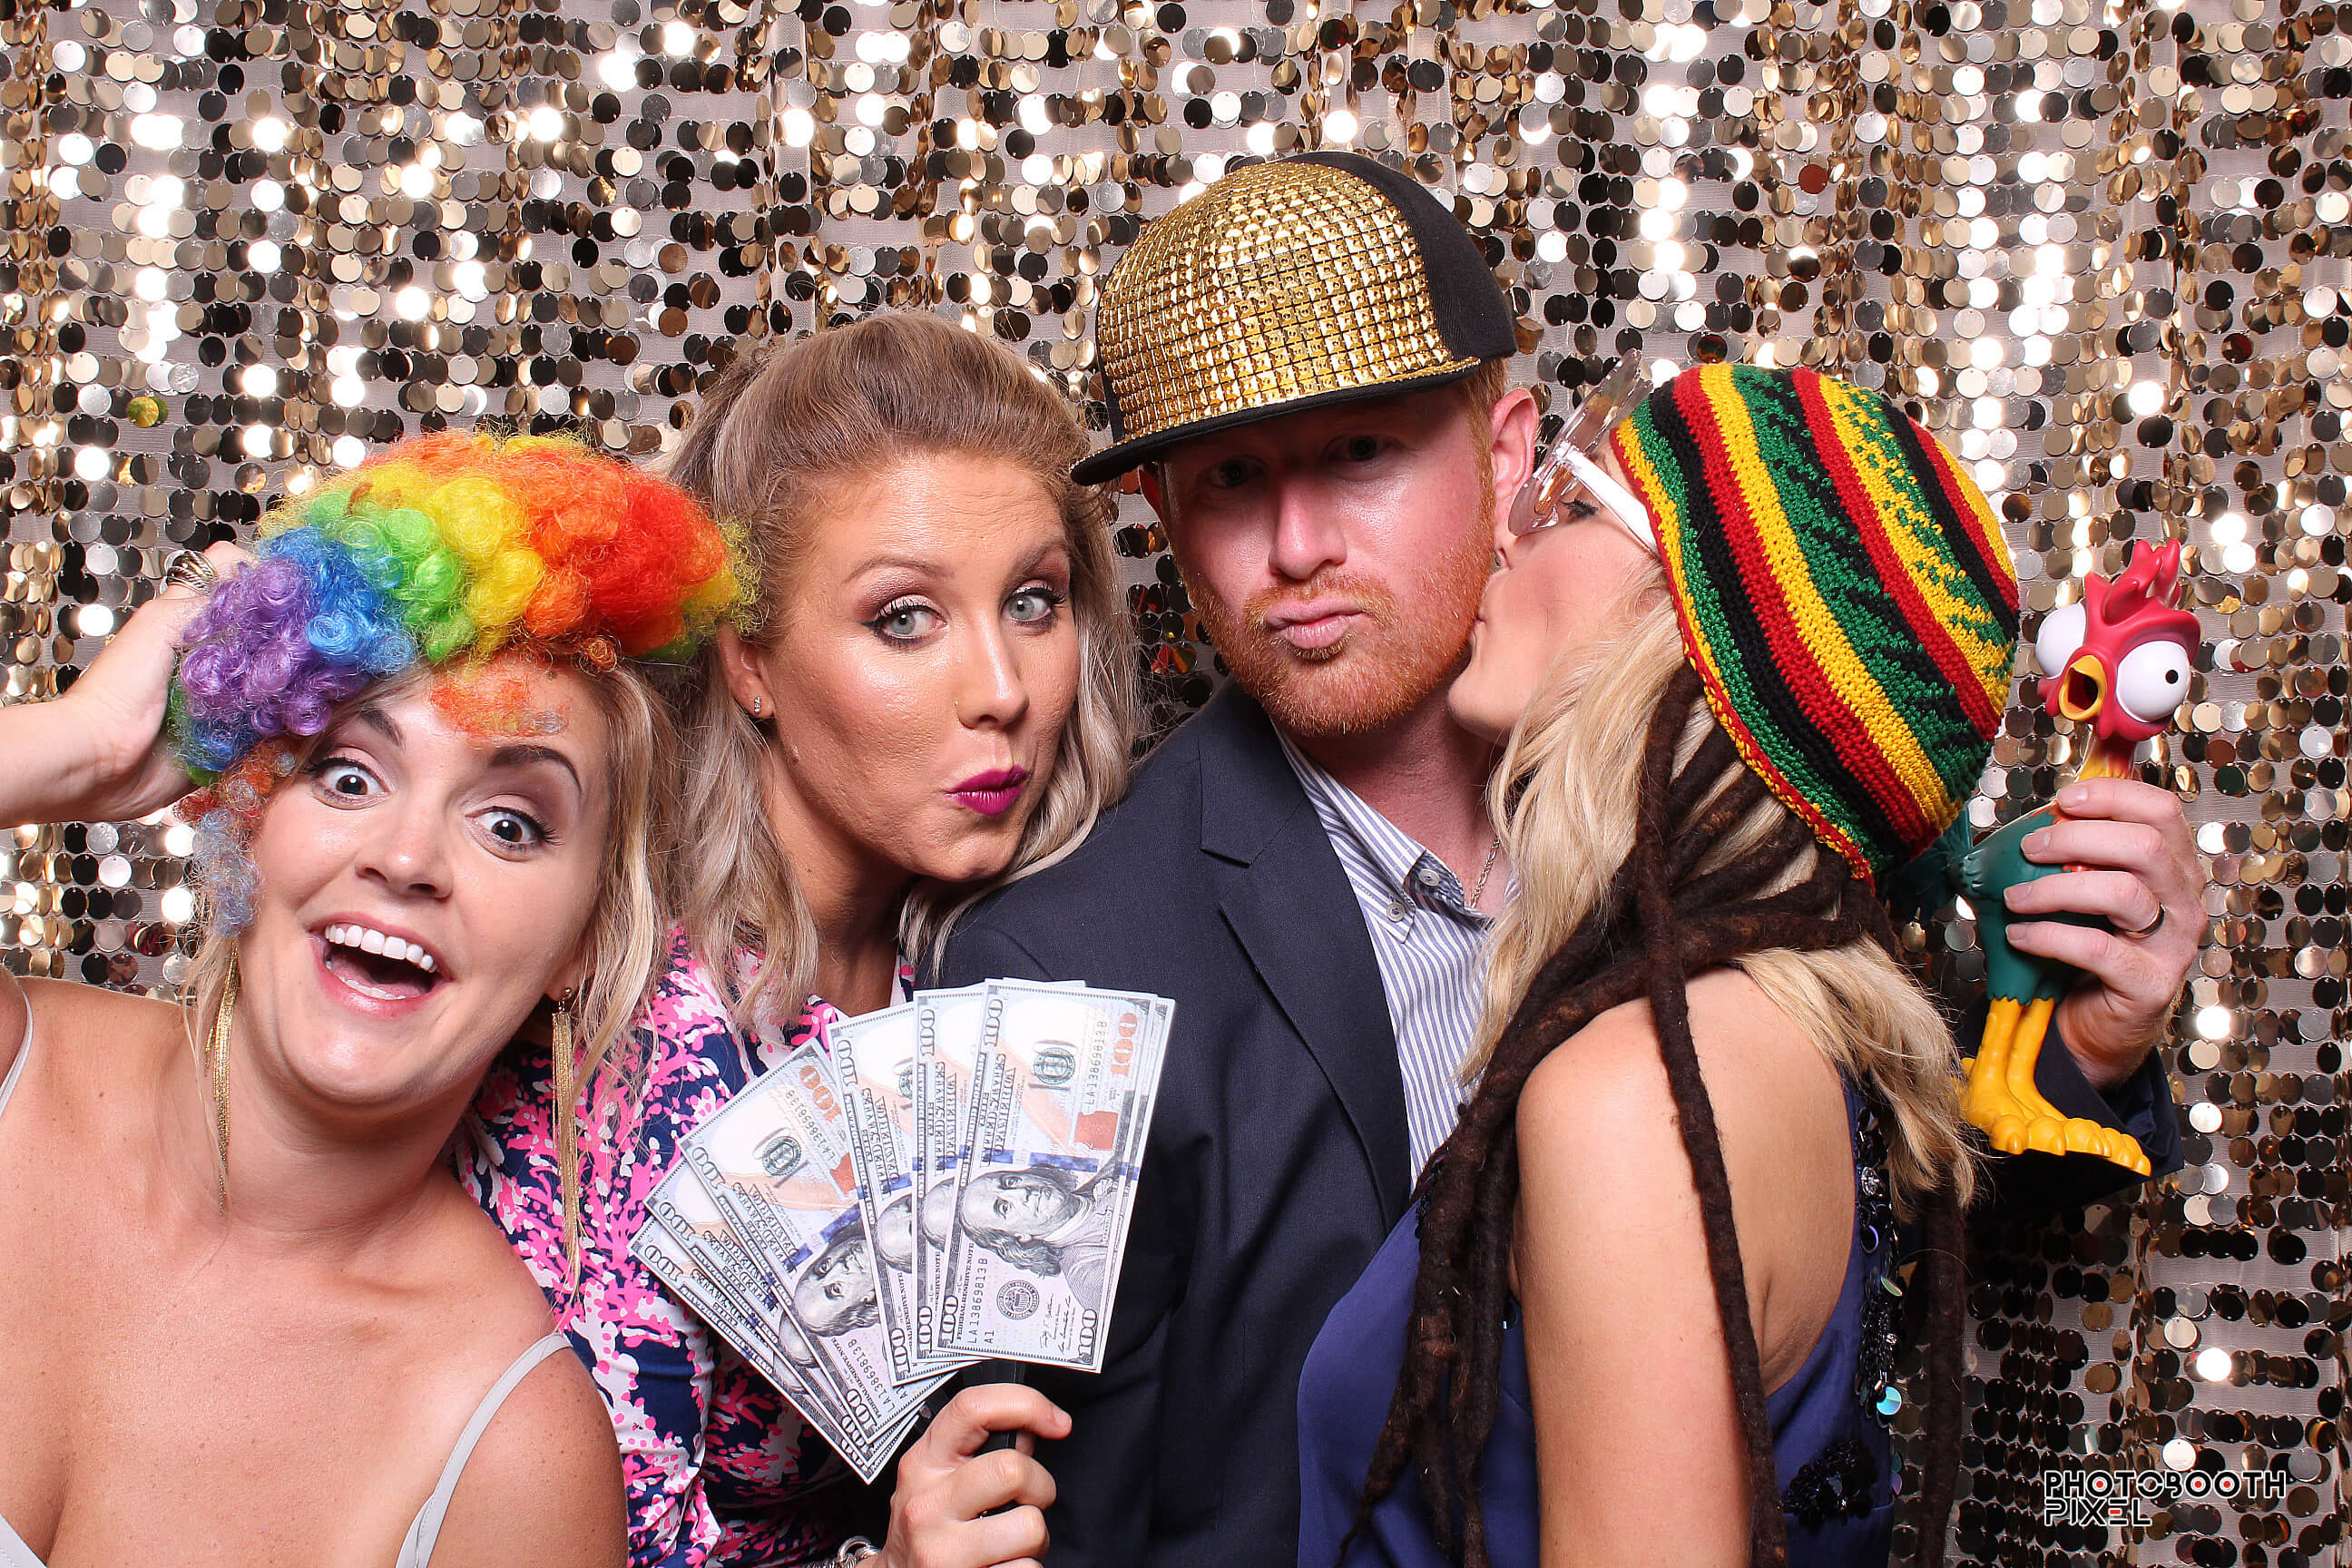 photo booth rental walkers landing fernandina beach fl